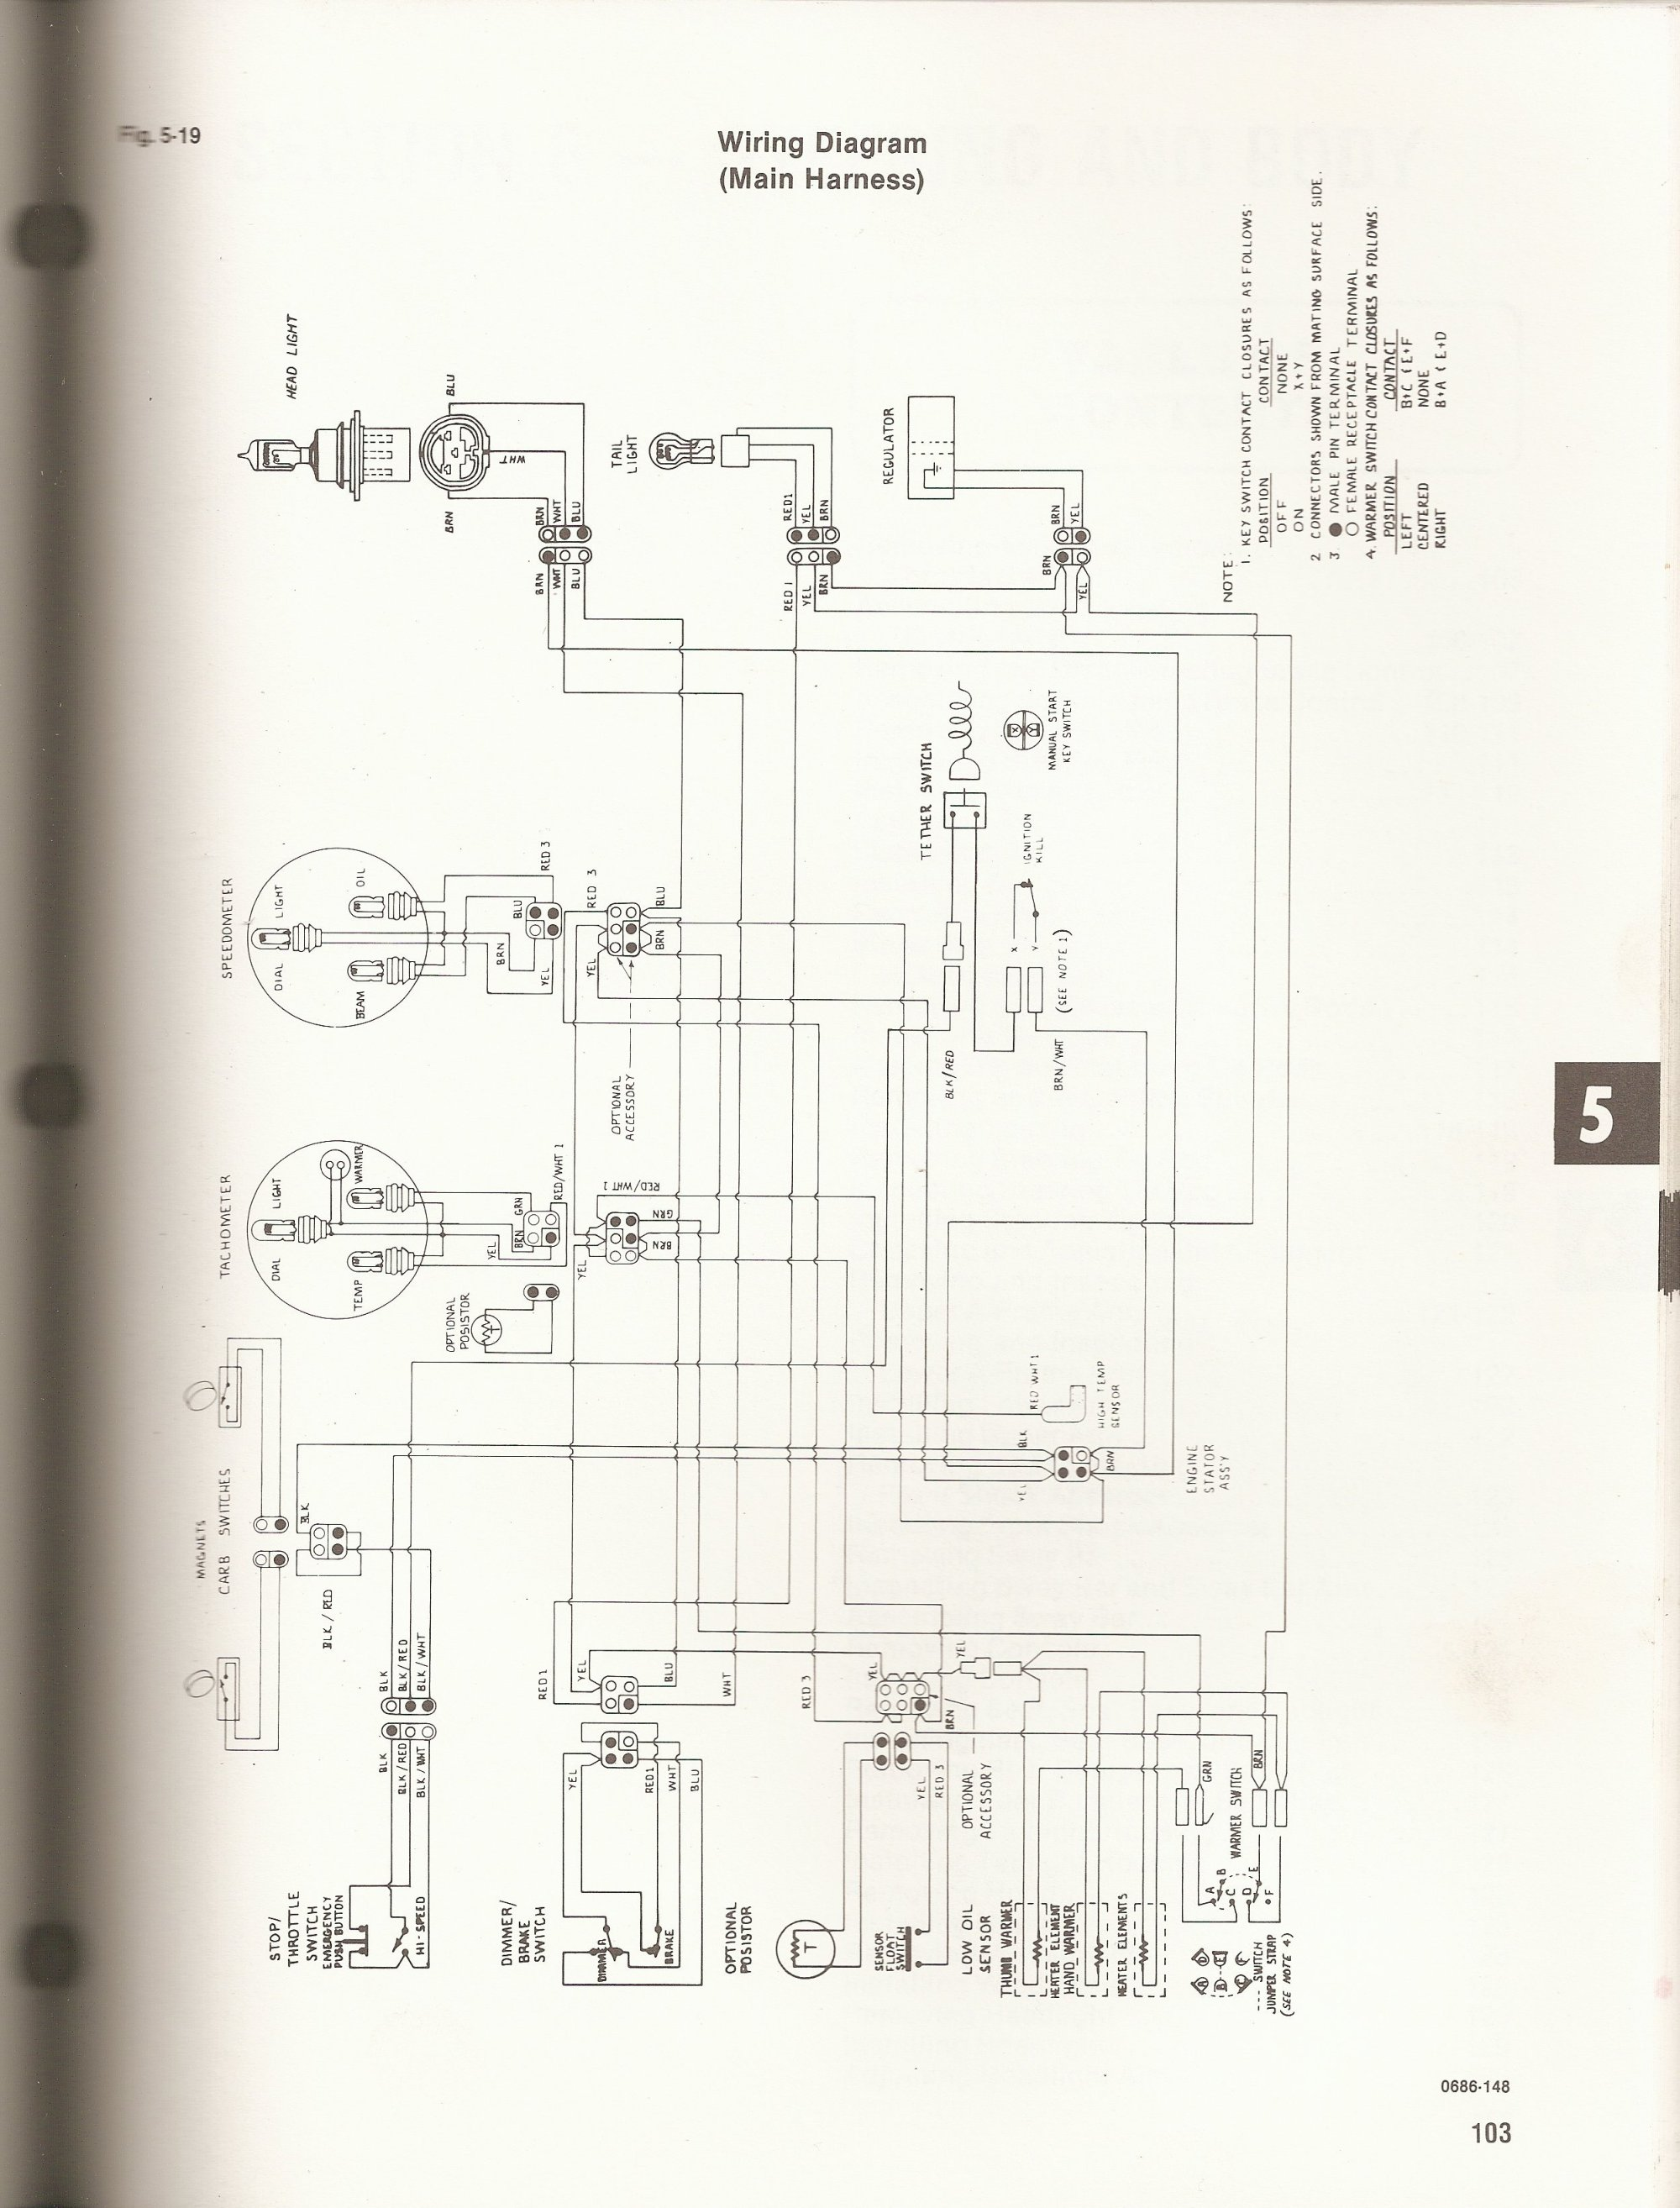 hight resolution of 1992 wildcat wiring diagram arcticchat com arctic cat forum 1992 arctic cat wildcat 700 wiring diagram 1992 arctic cat 700 wildcat wiring diagram